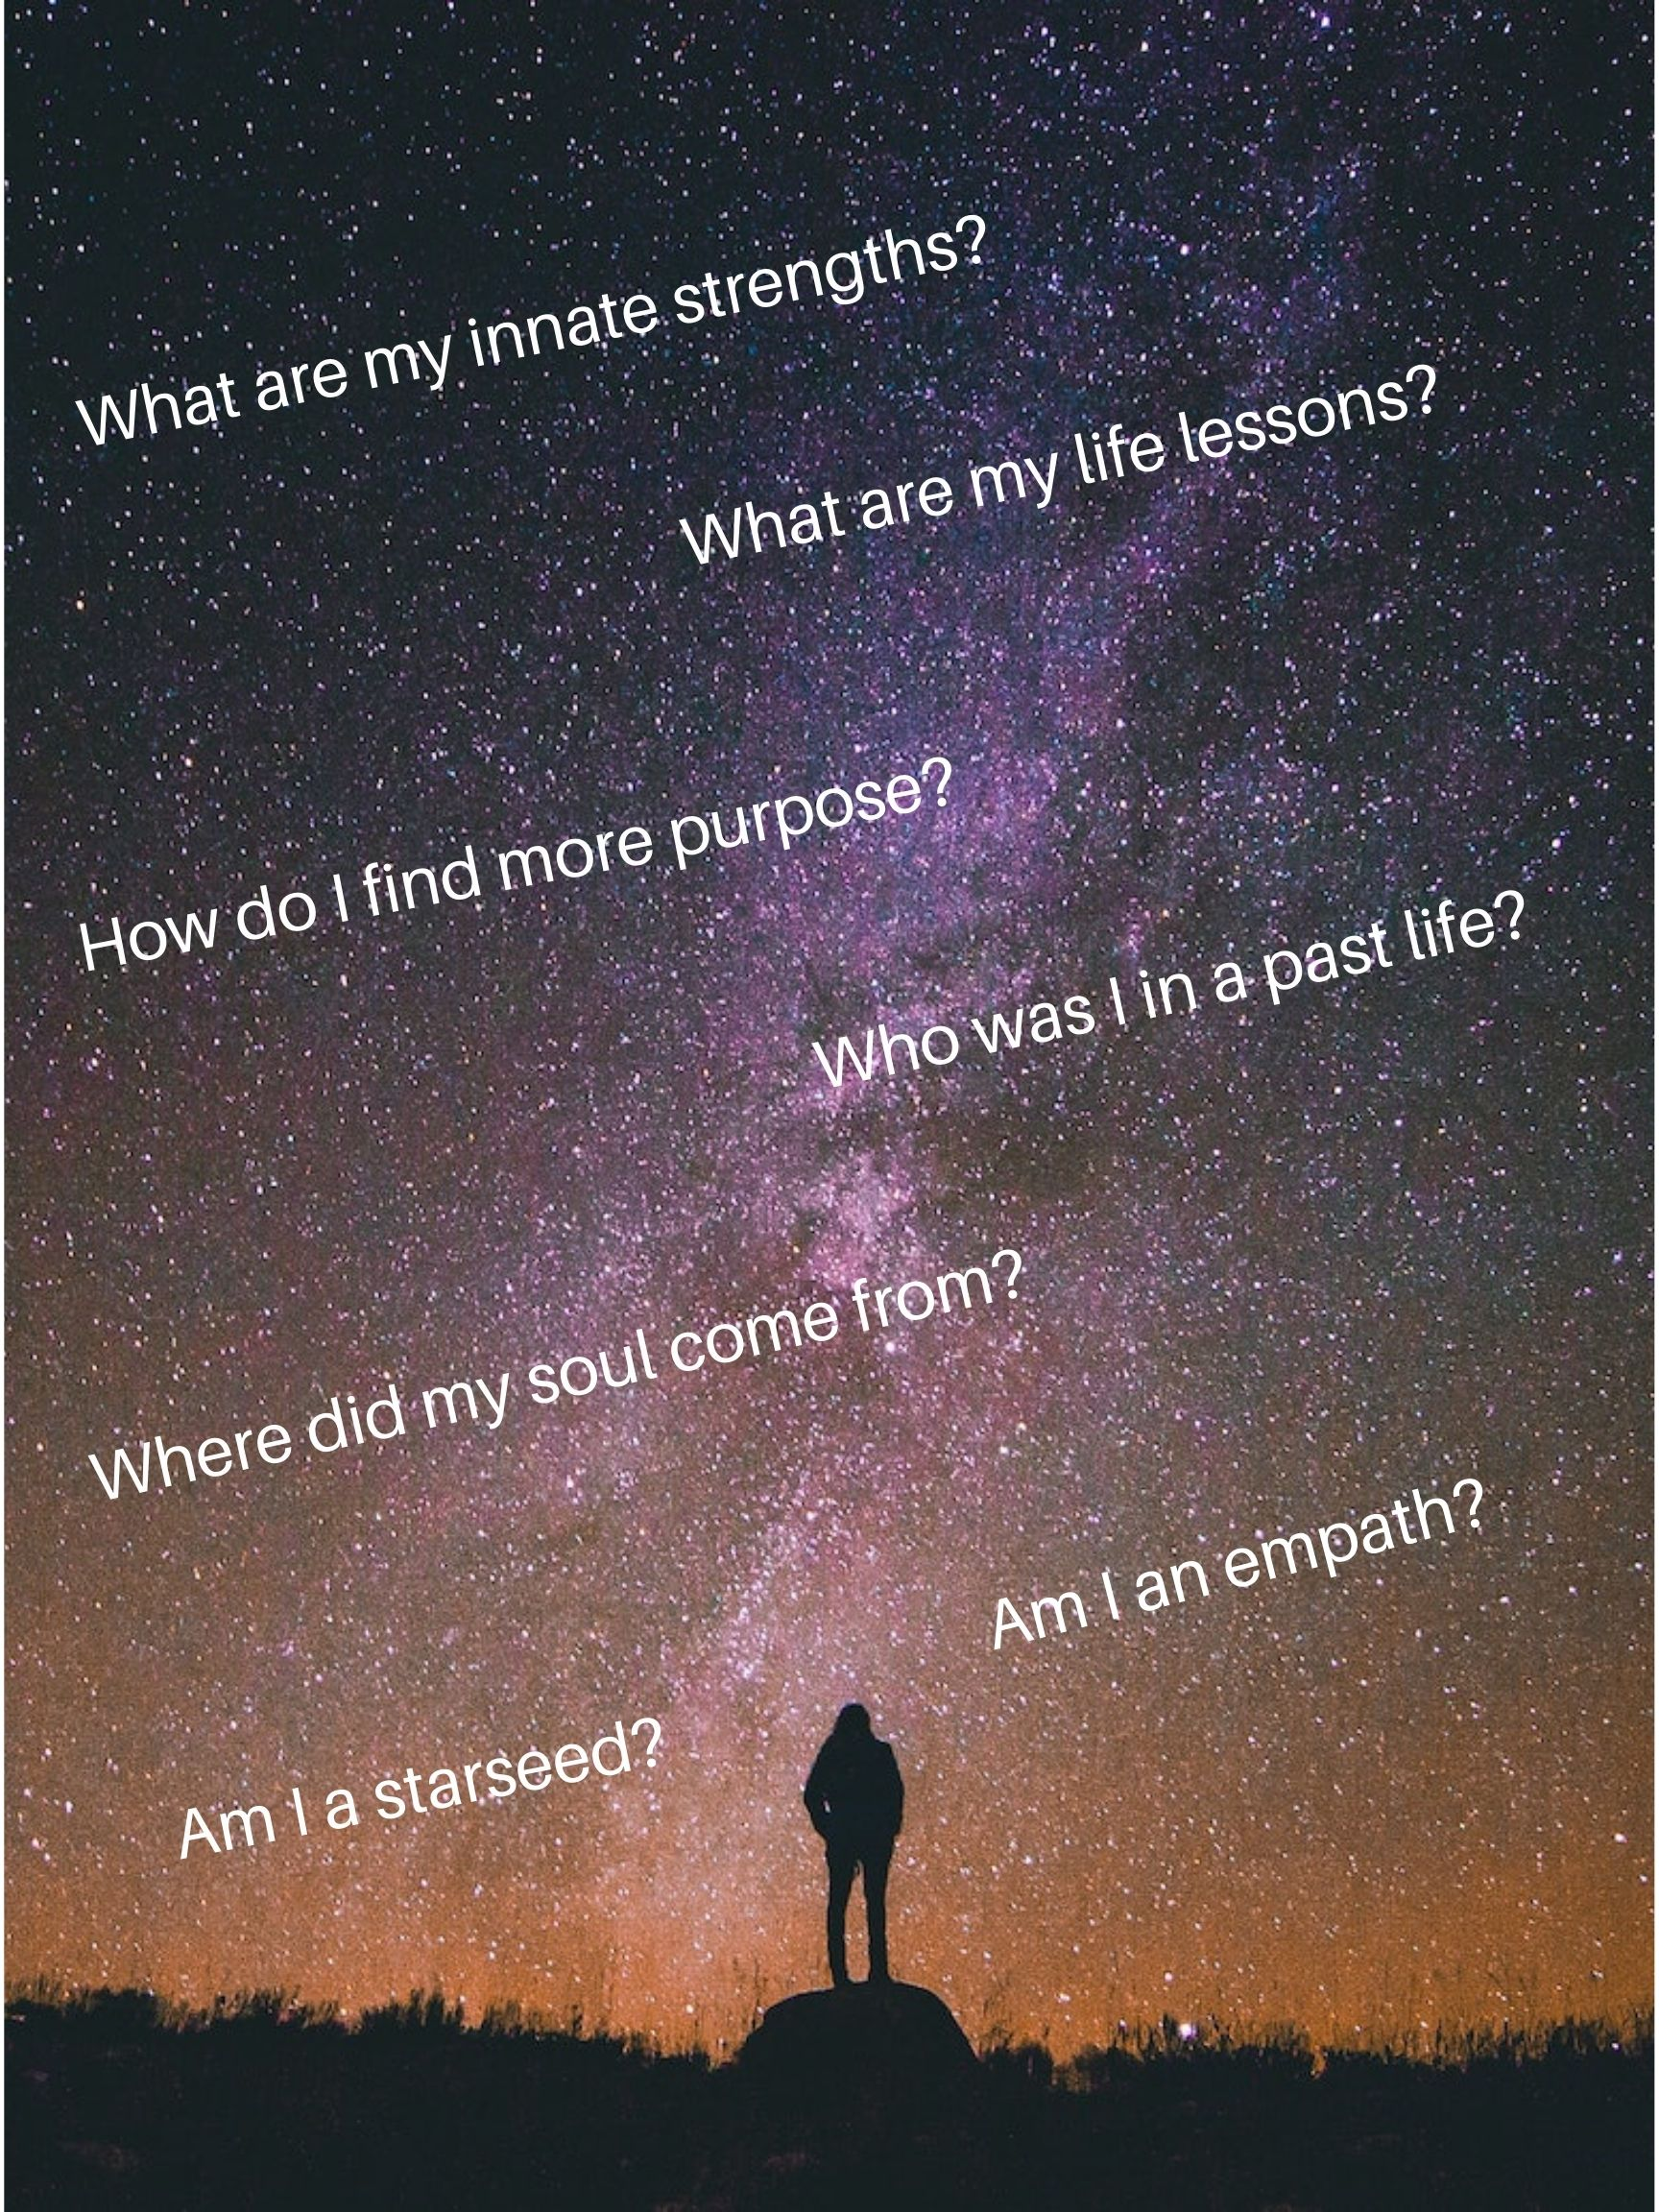 Where did my soul come from? What are my life lessons? Am I a starseed? Who was I in a past life? Am I an Empath? What are my innate strengths? How do I find more purpose?